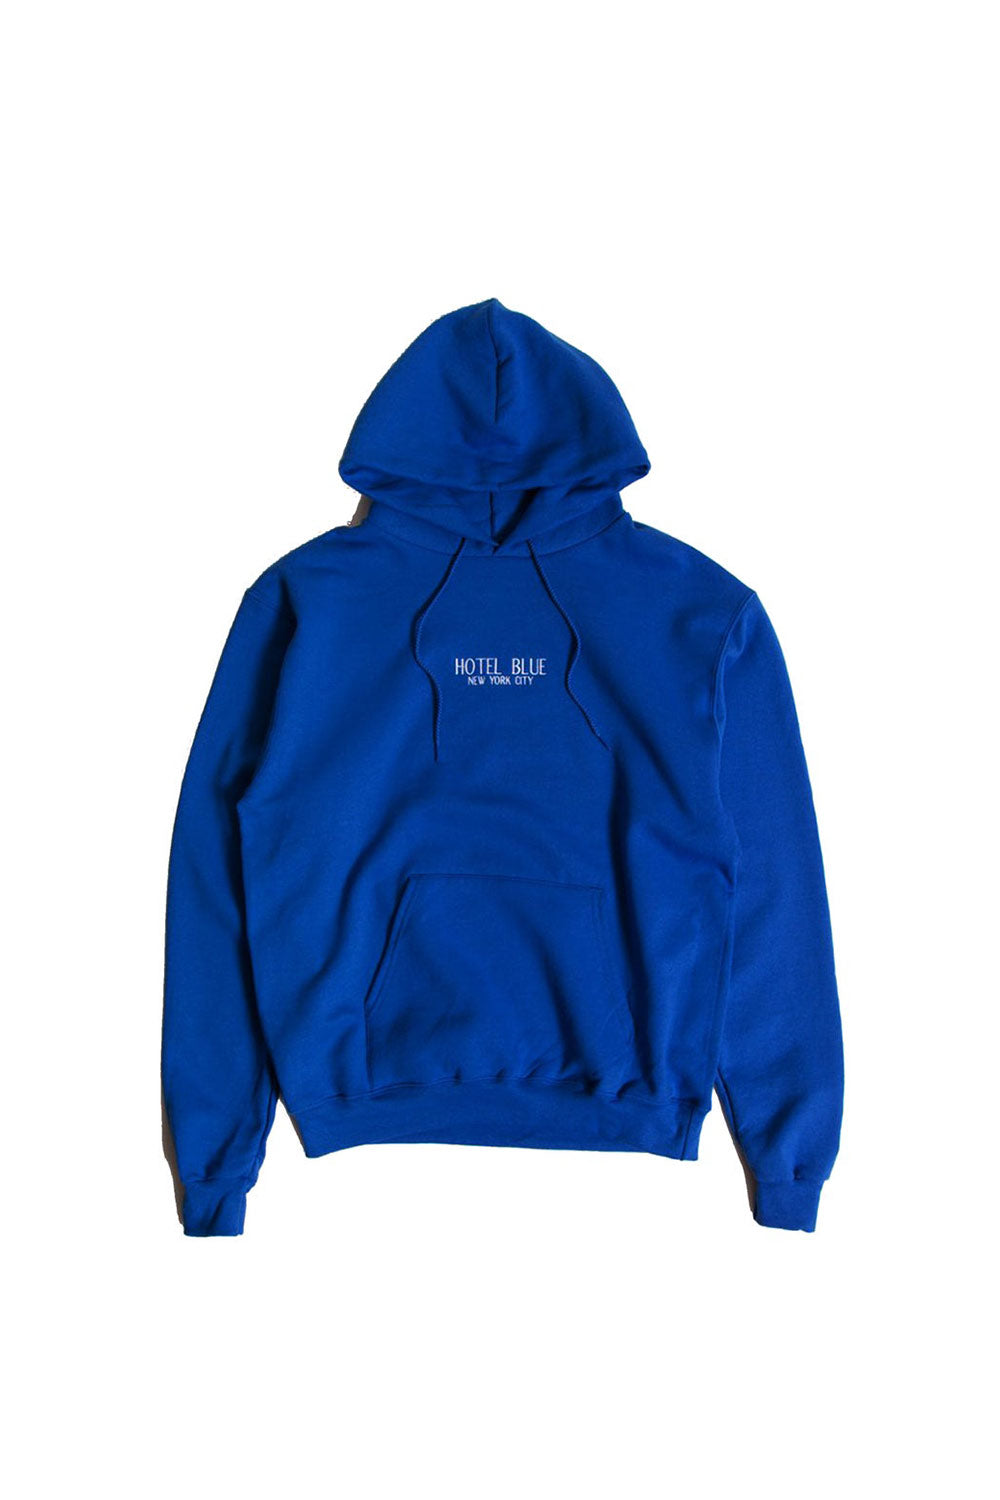 Hotel Blue Logo Champion Pullover - Royal | Hotel Blue NYC Clothing Online